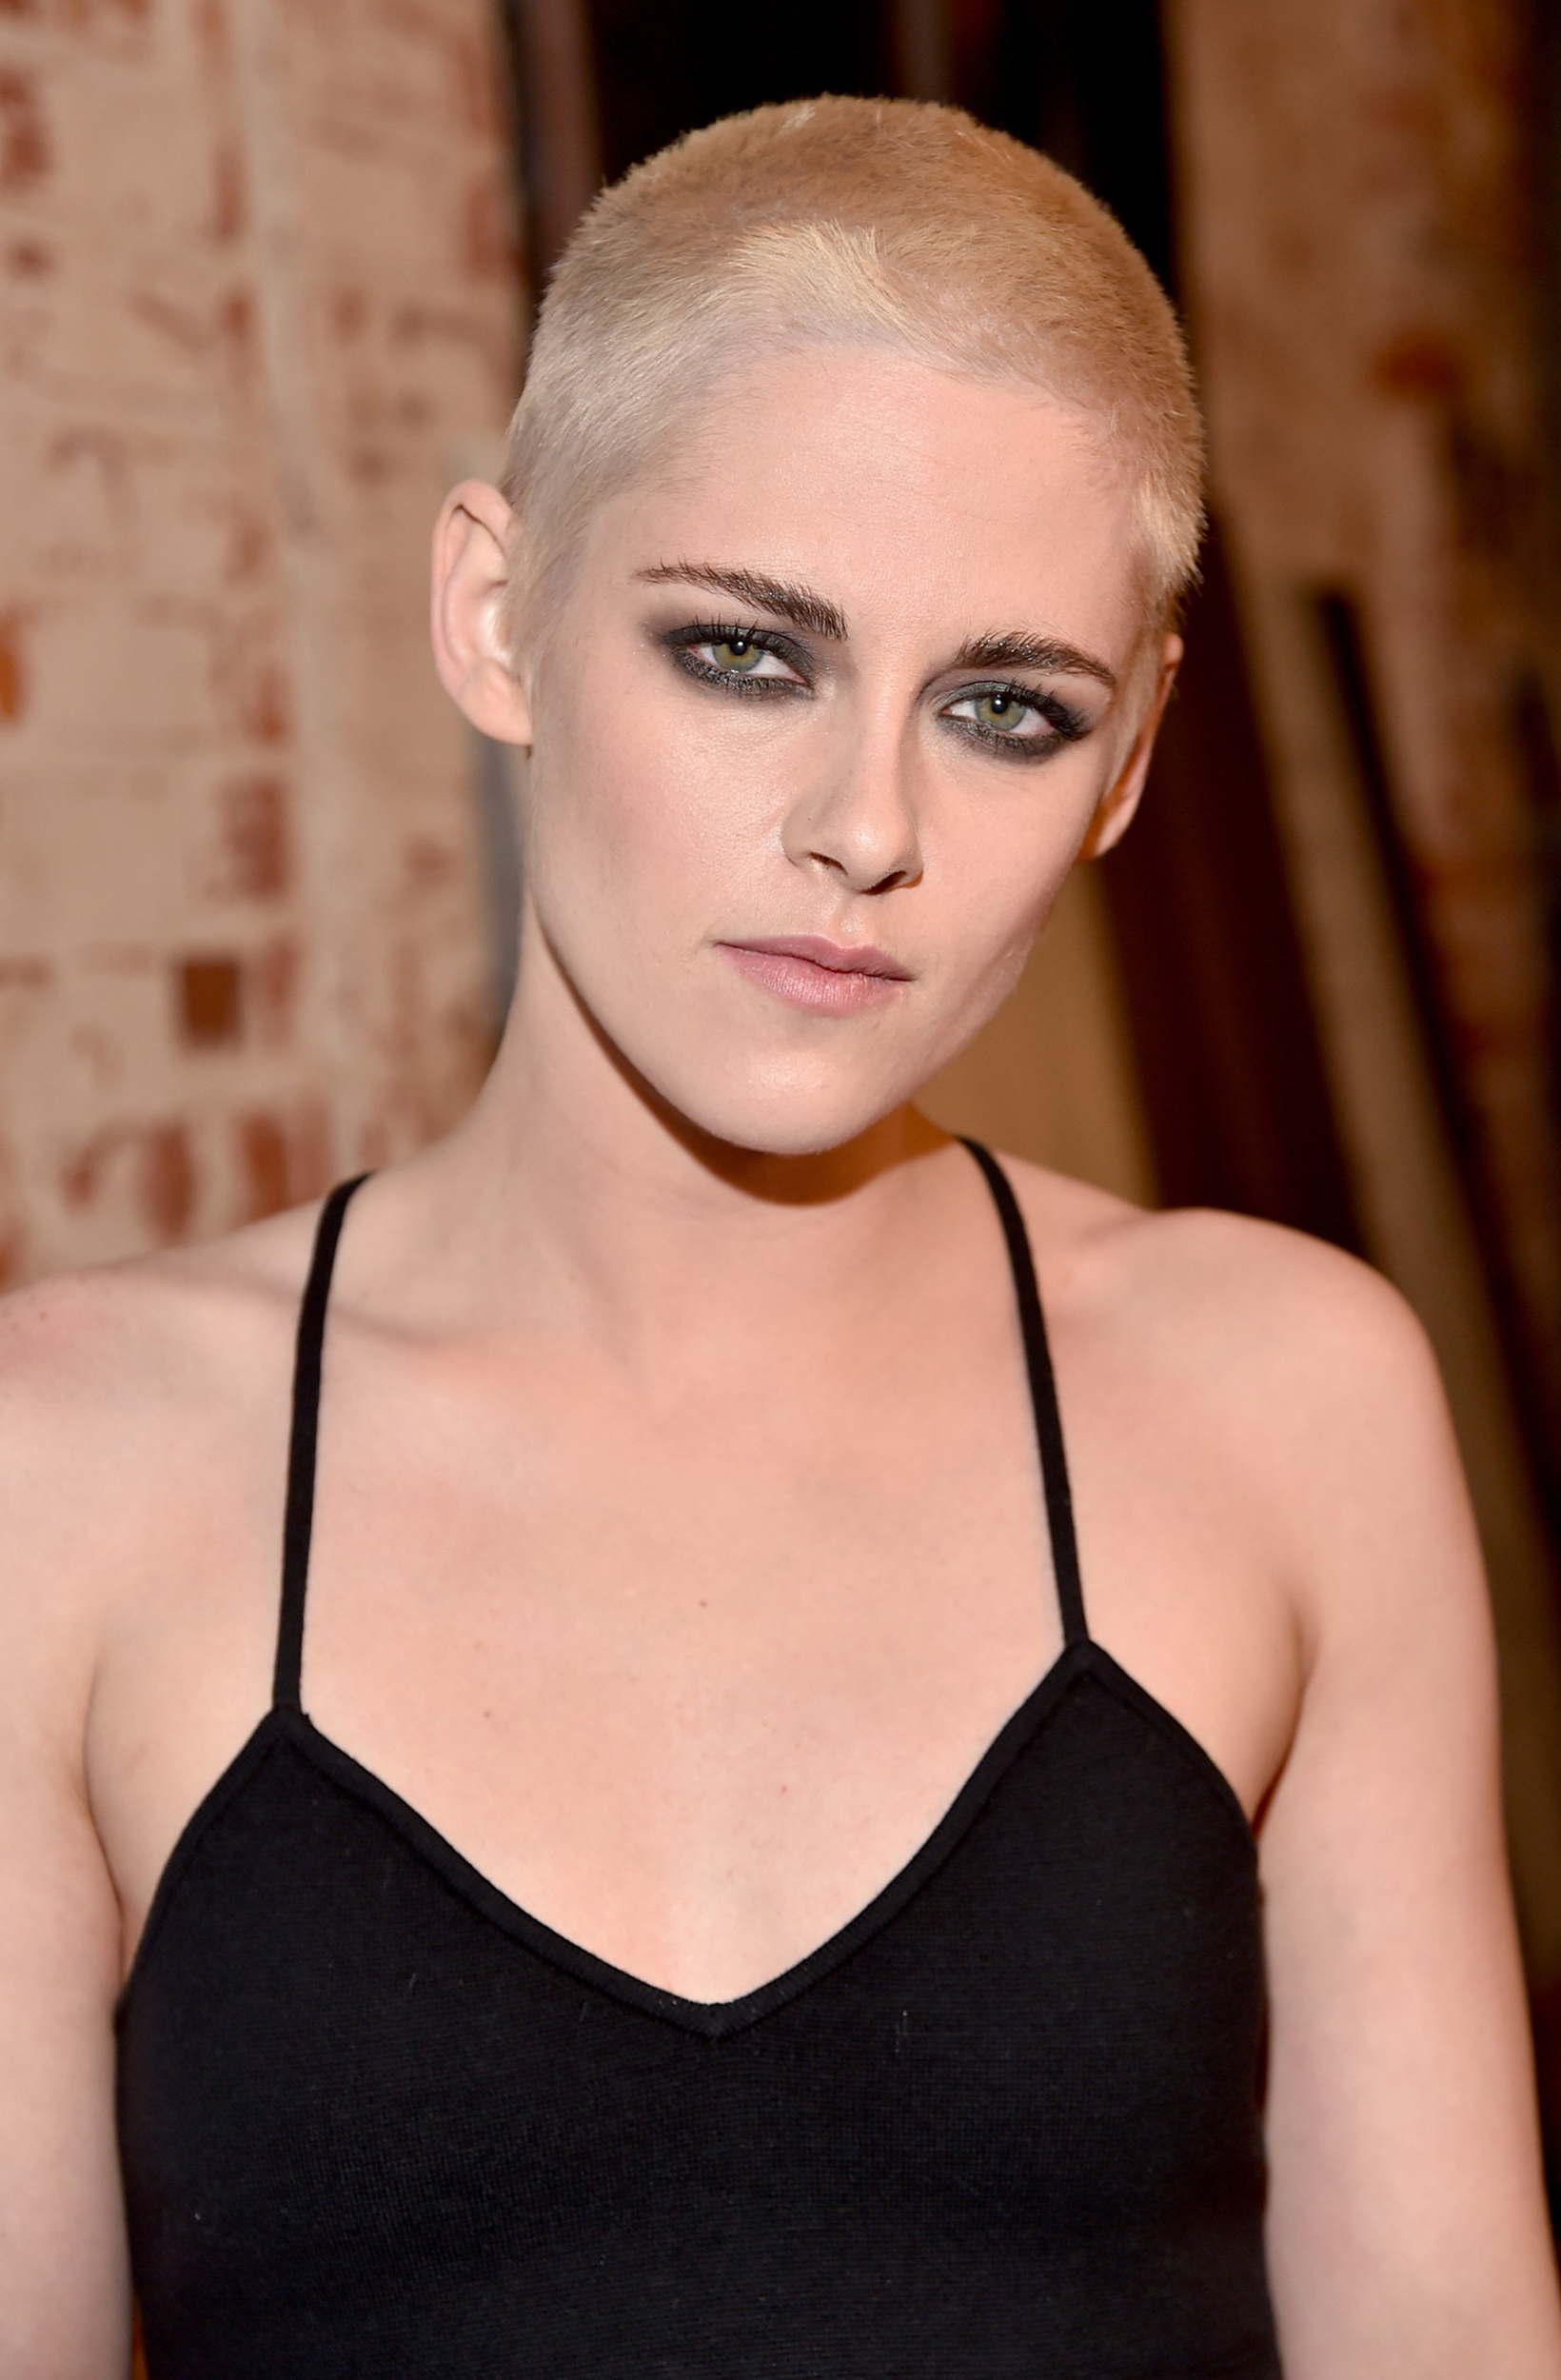 Kristen Stewart Shaved Her Head See Her Dramatic Blond And Buzzed Look